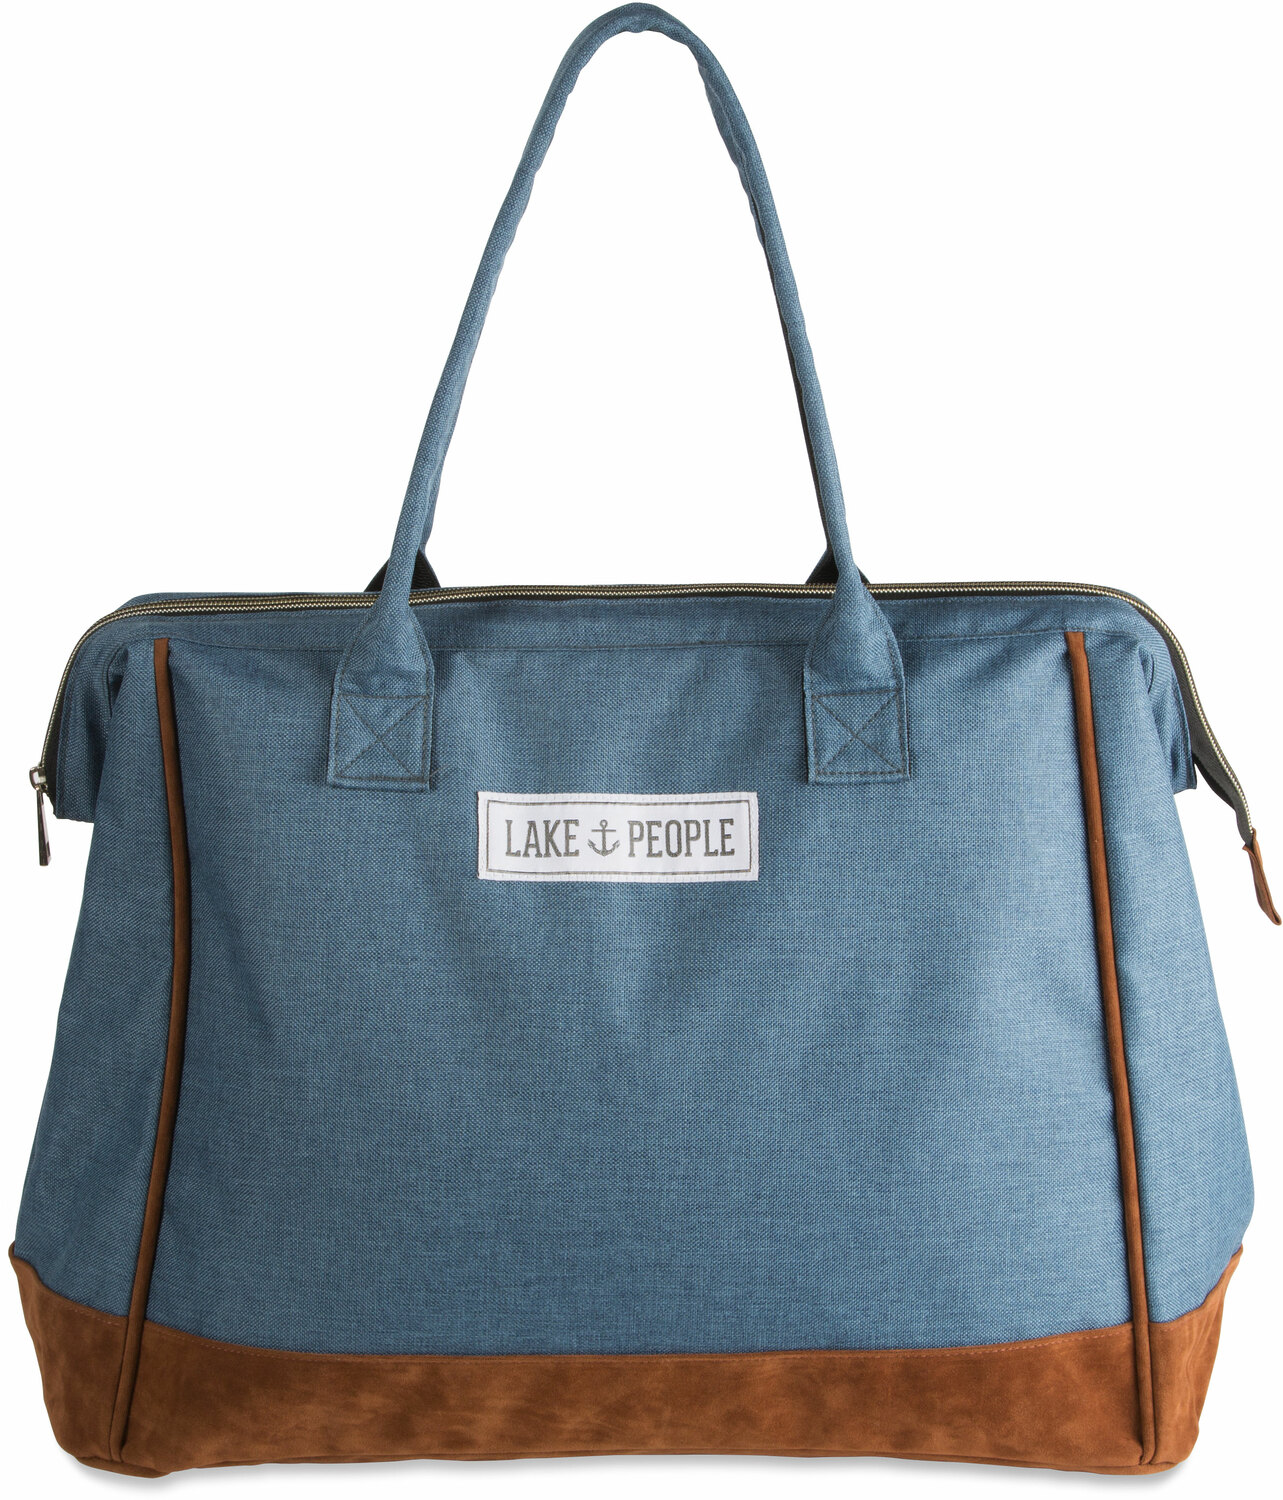 "Lake People by We People - Lake People - 18"" x 8.25"" x 14"" Weekender Bag"